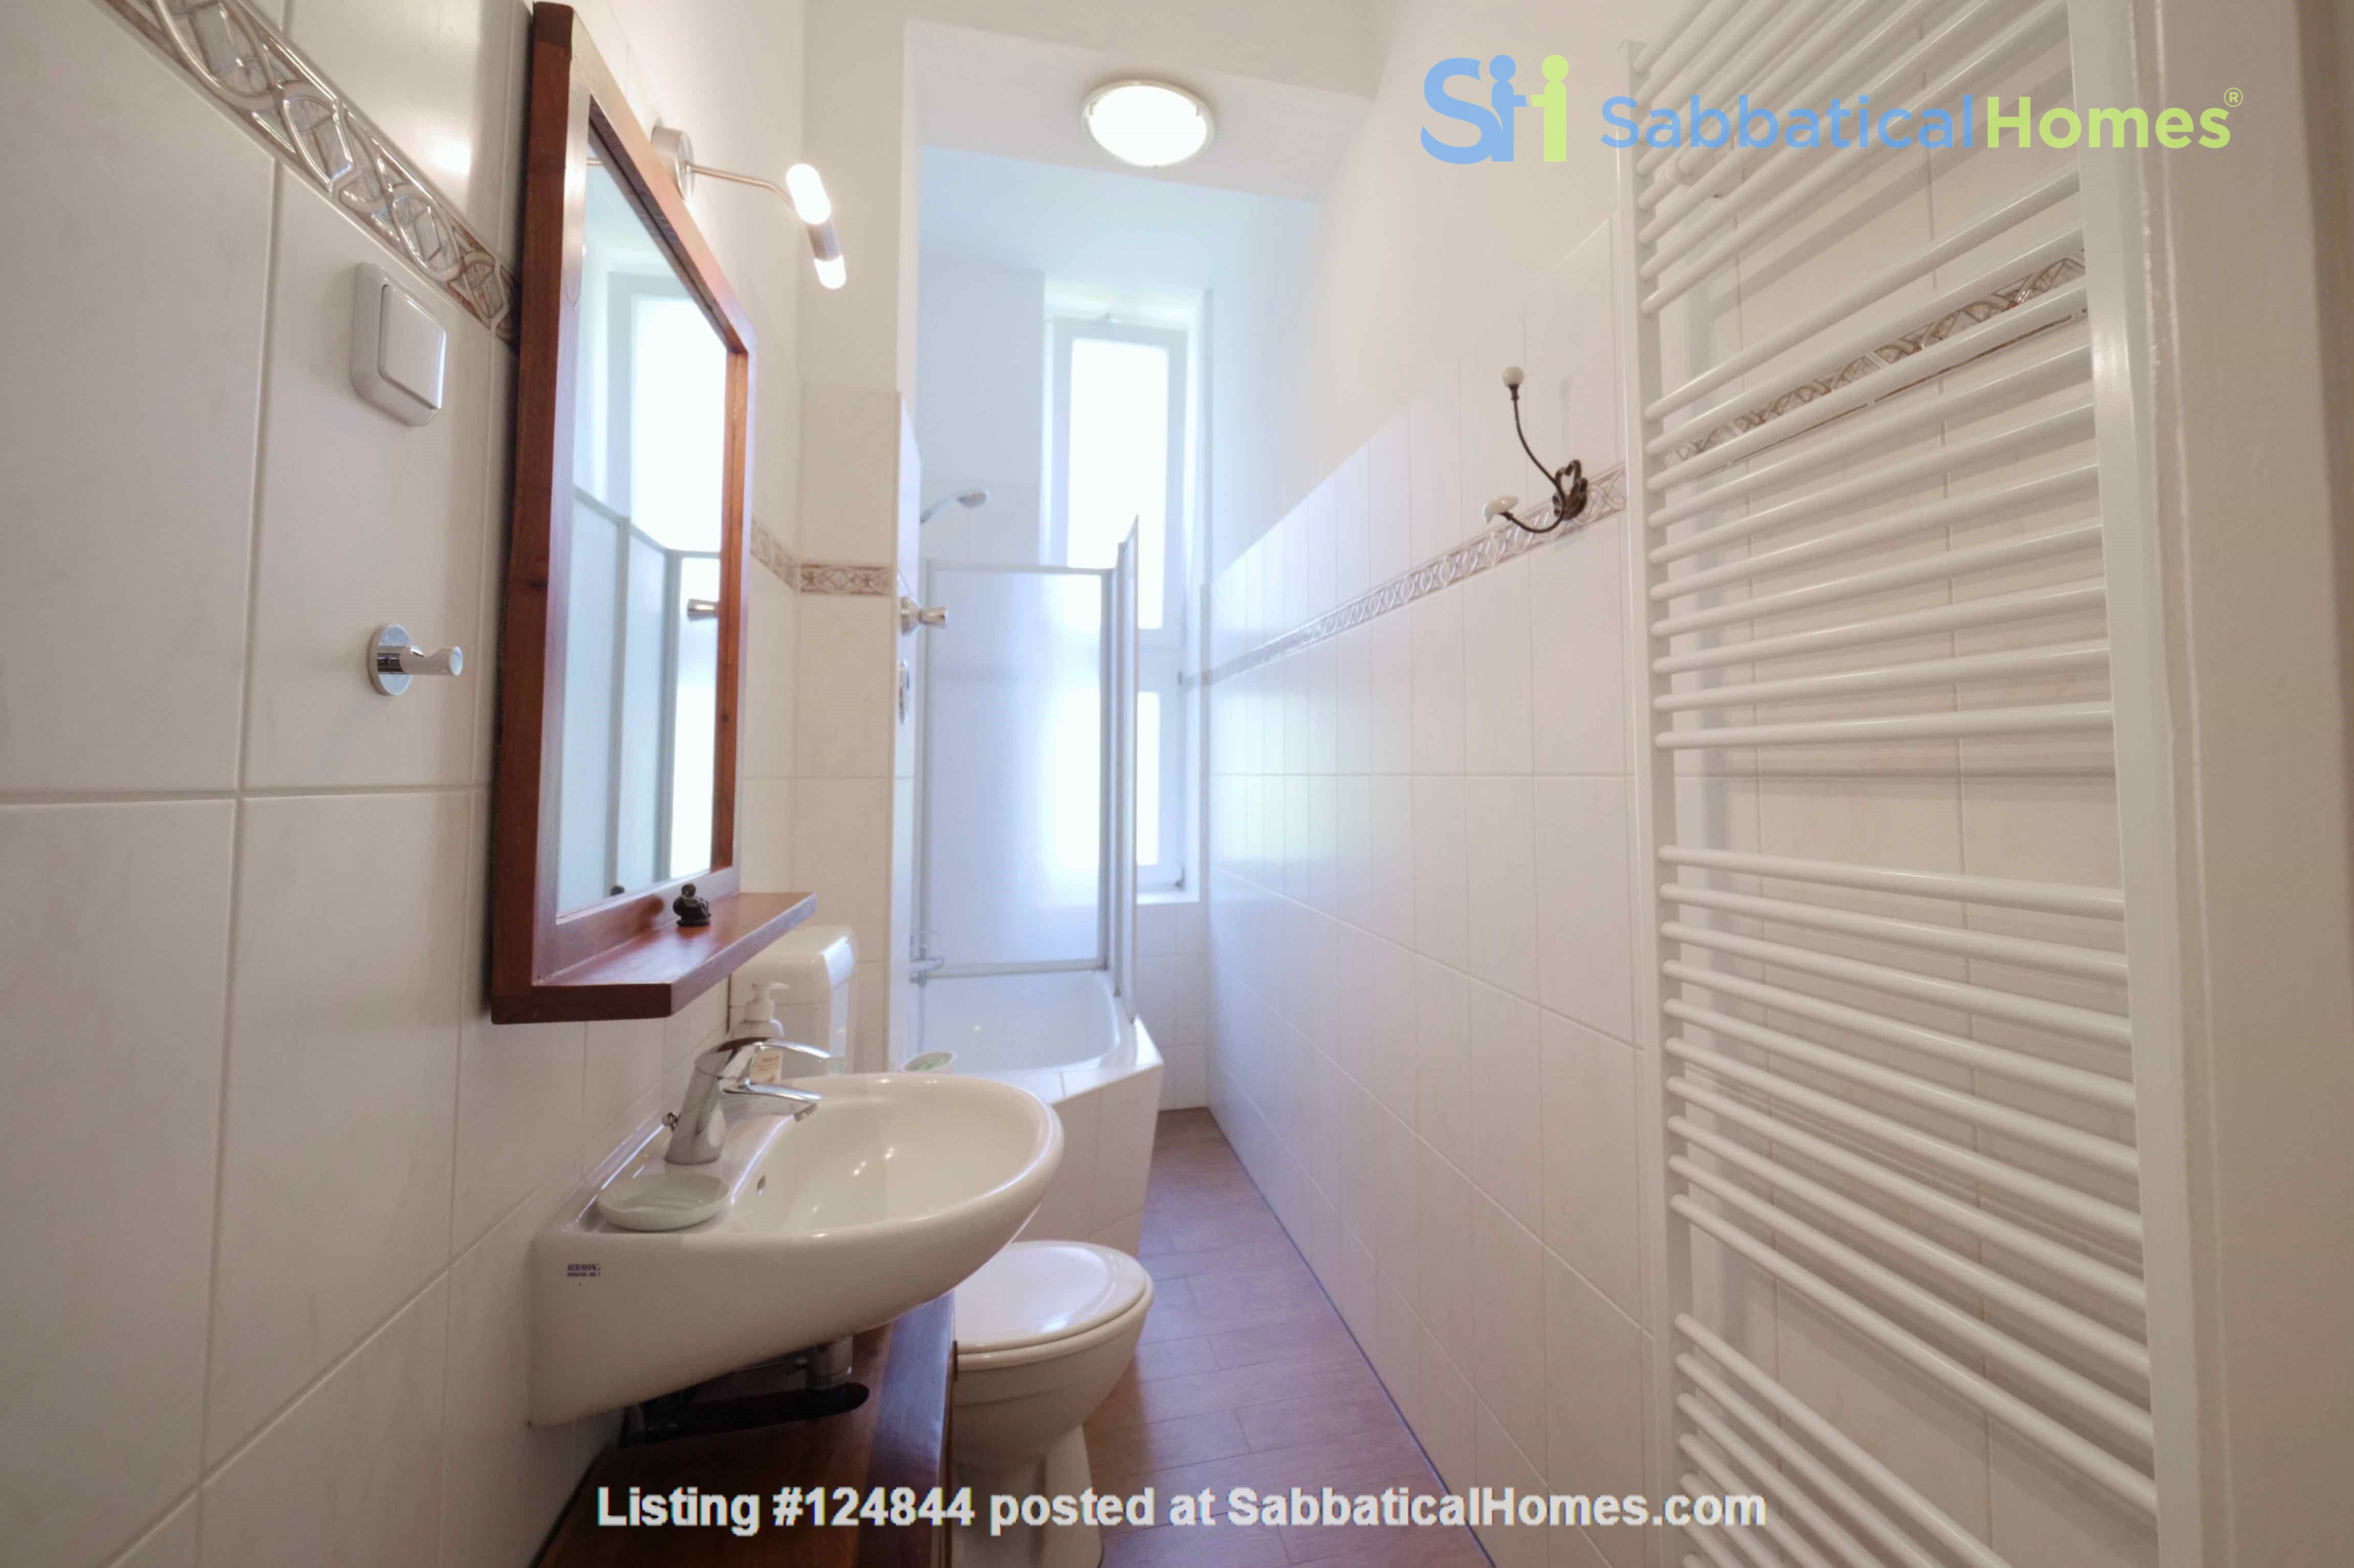 Charming 2-room apartment with balcony and fireplace Home Rental in Berlin, Berlin, Germany 5